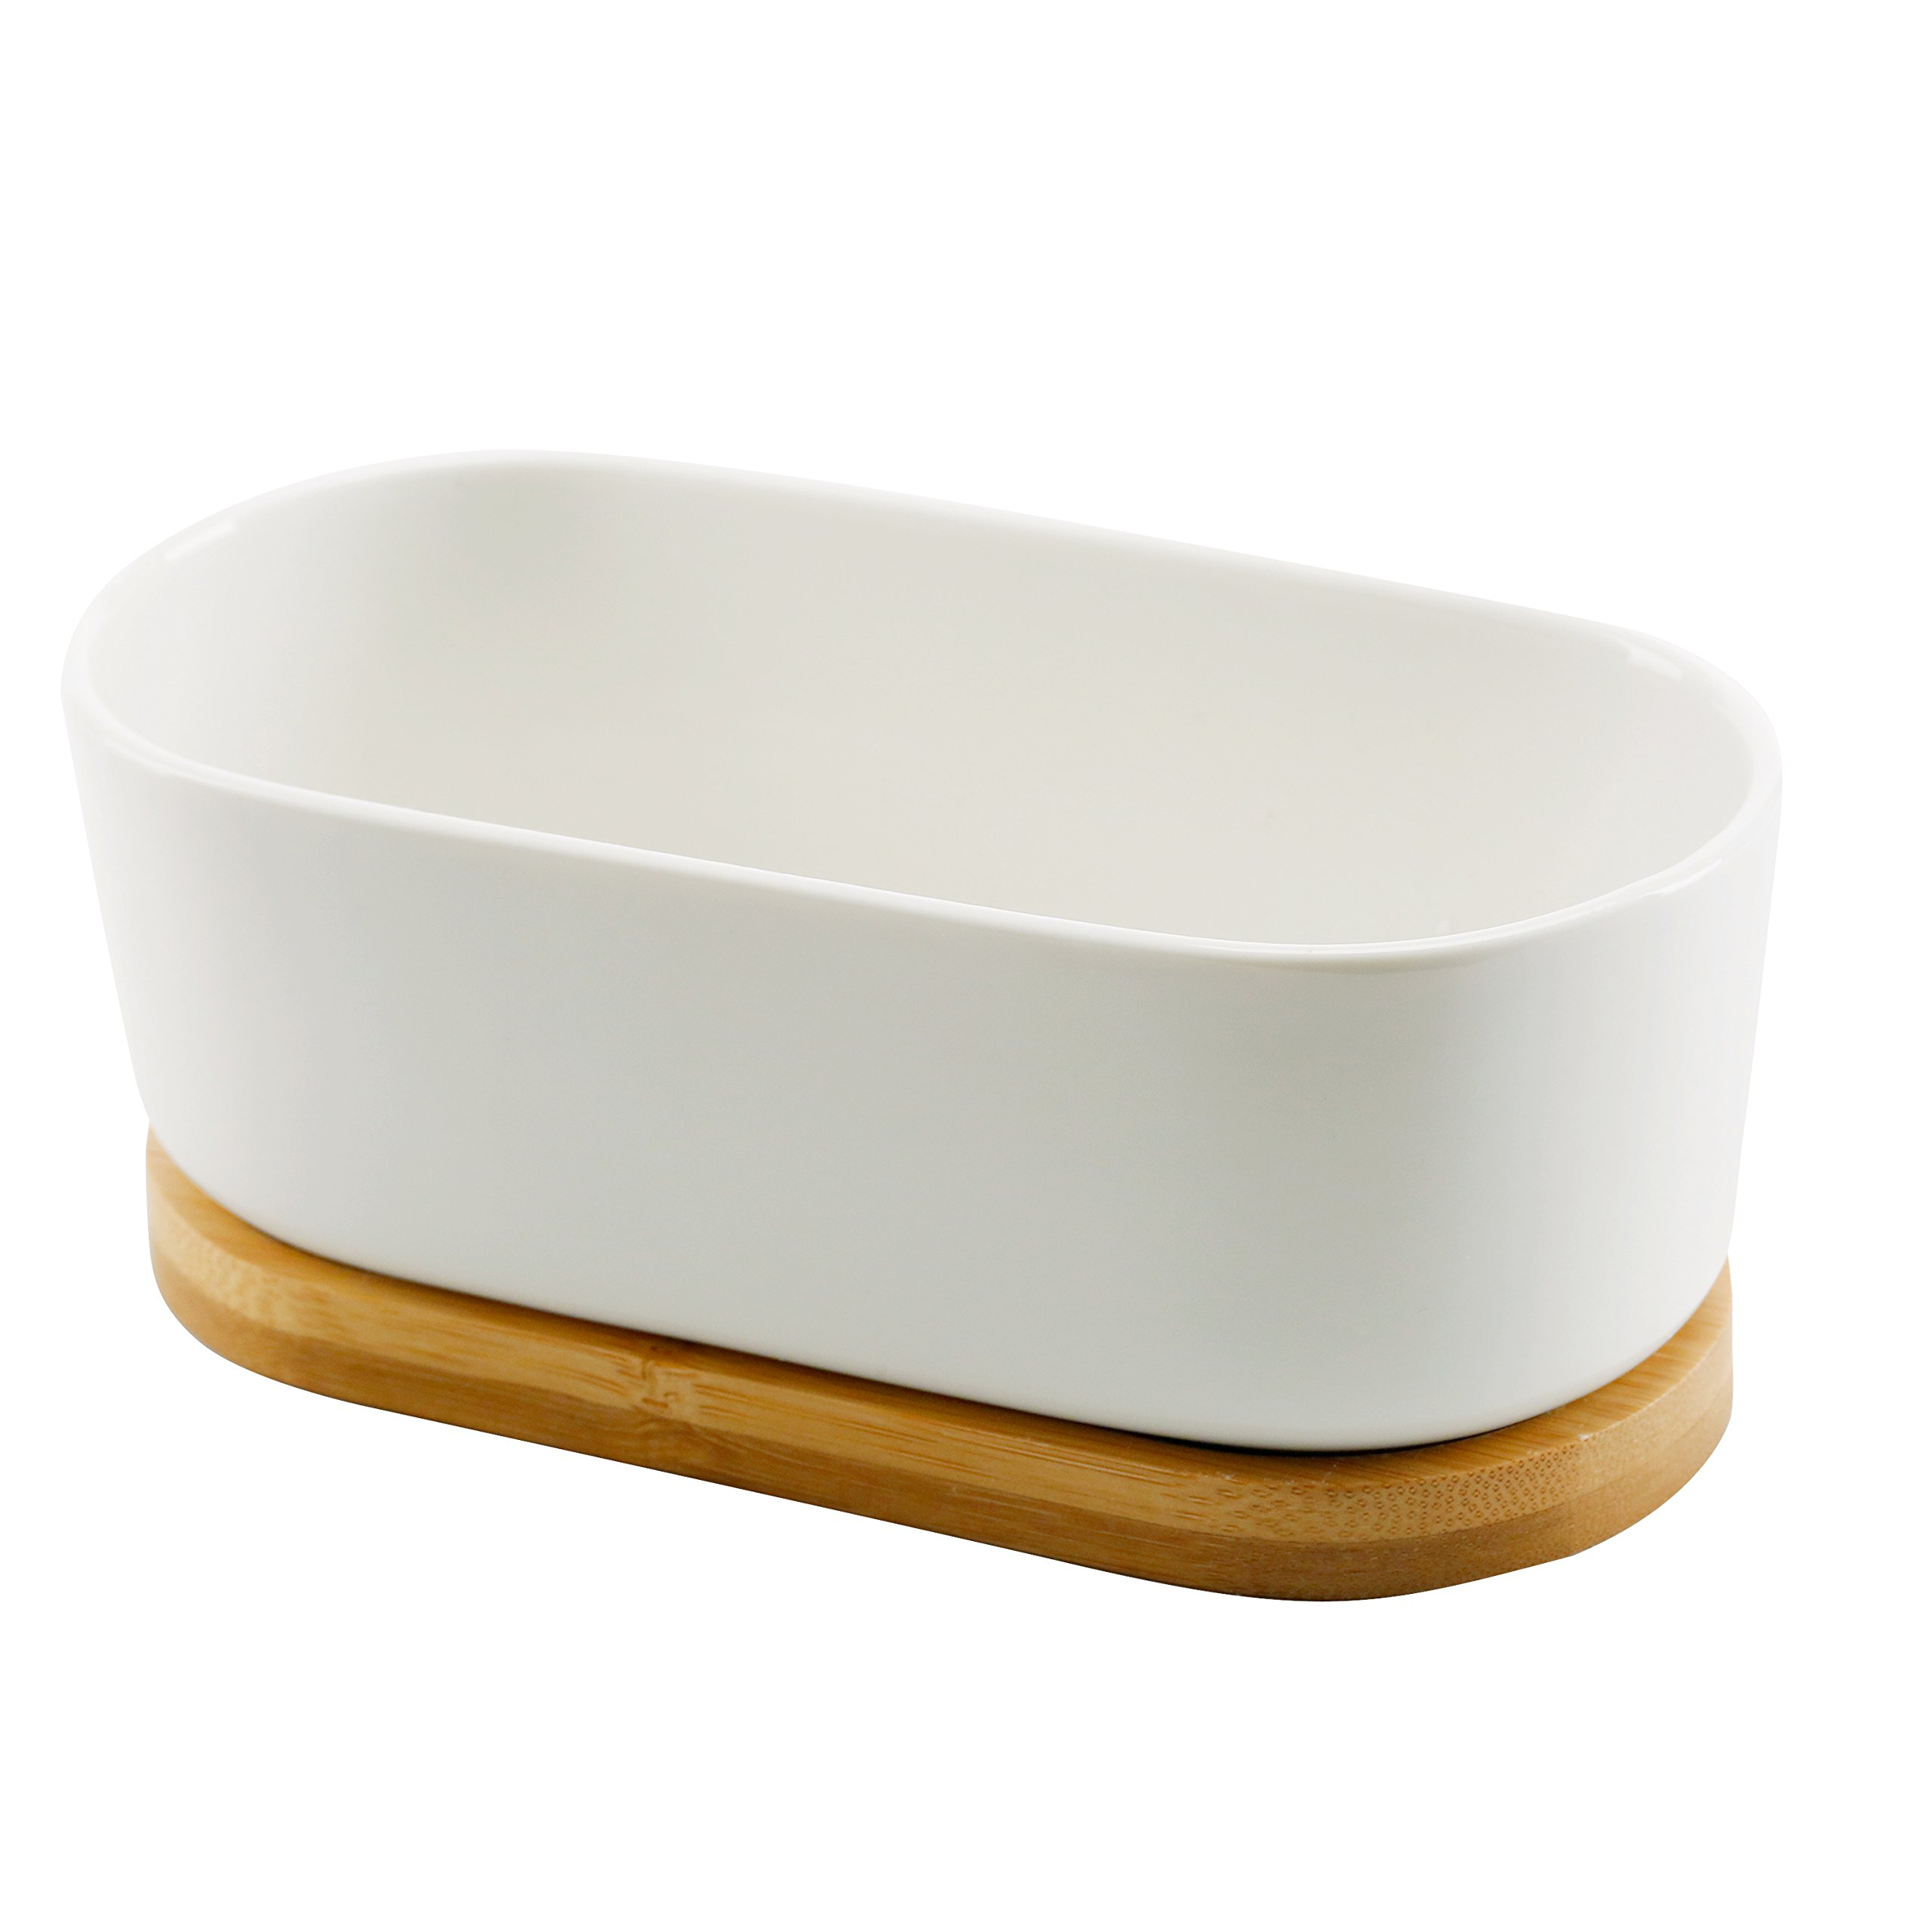 Oval-Shaped White Ceramic Succulent Planter, 6.5-Inch Container with Removable Bamboo Saucer